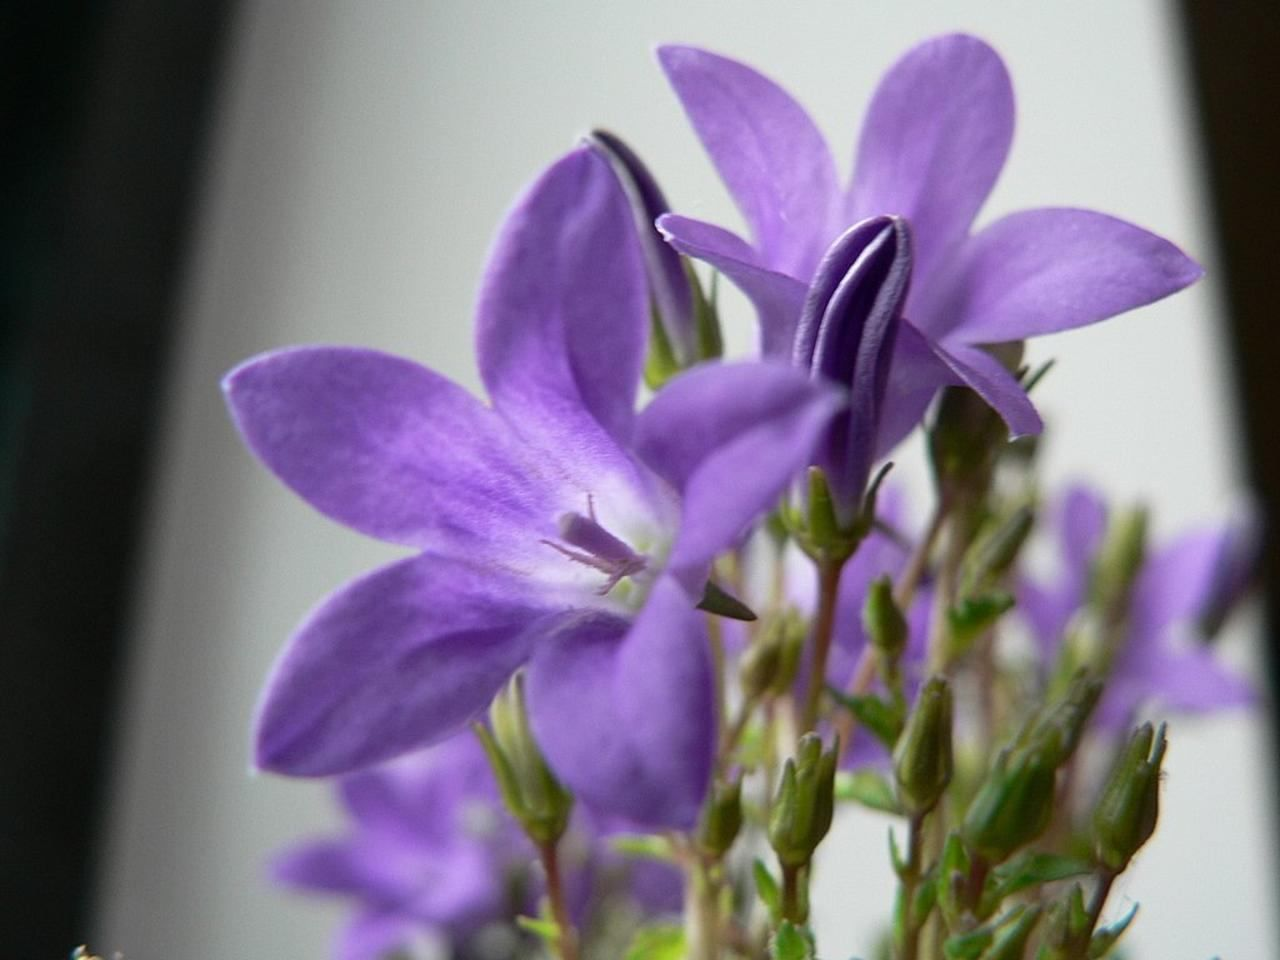 Flowers Wallpapers For Desktop Full Size Hd File Purple Flowers Close Up Photo Jpg Wikimedia Commons